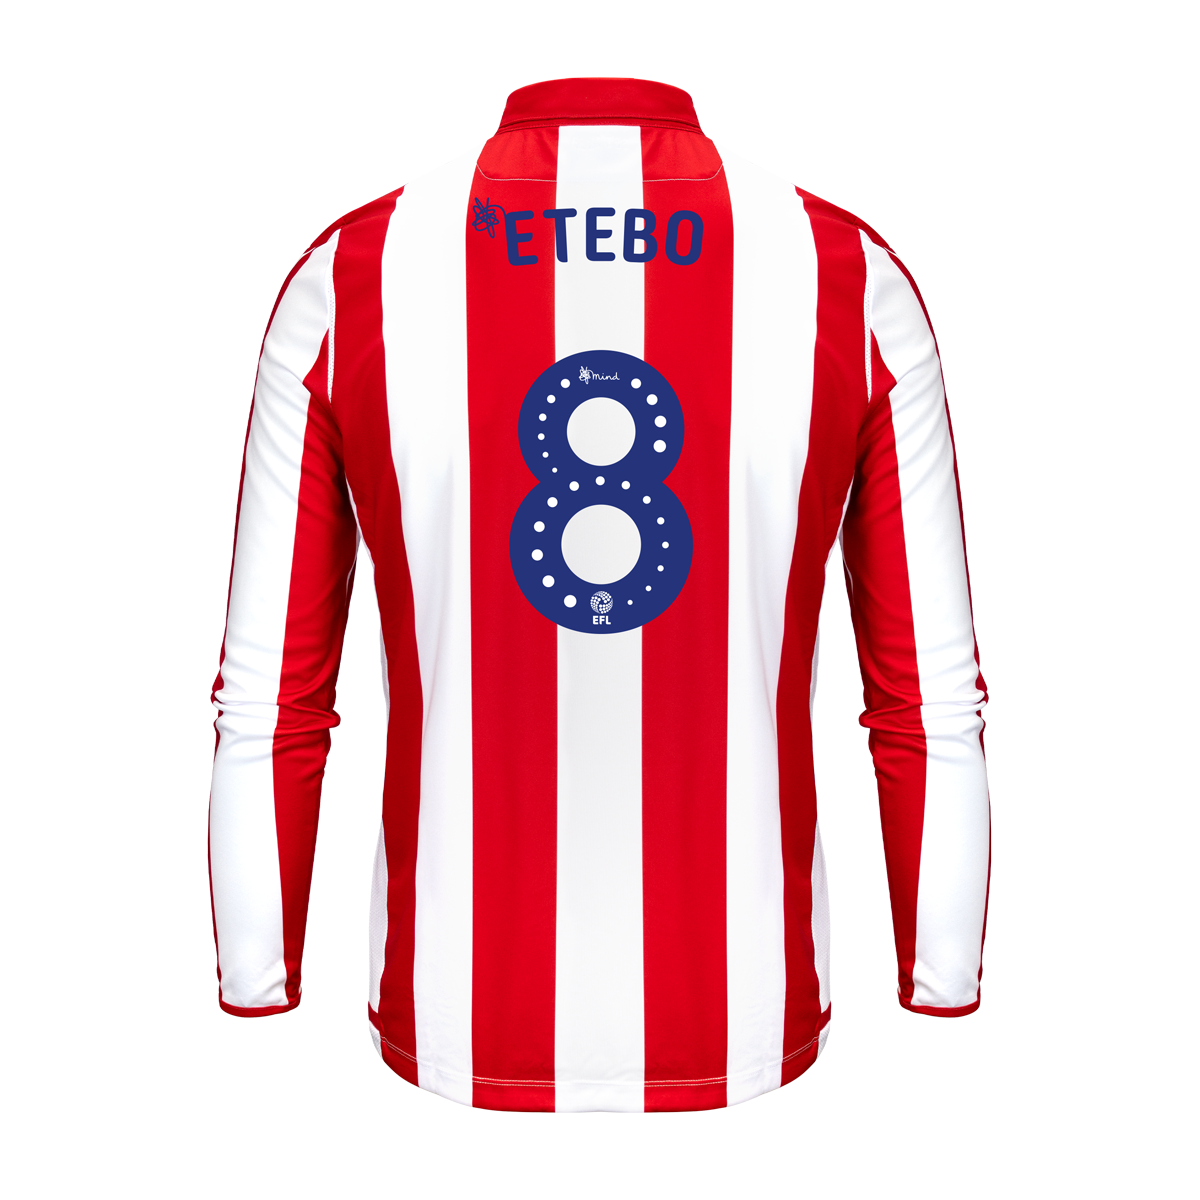 2019/20 Junior Home LS Shirt - Etebo